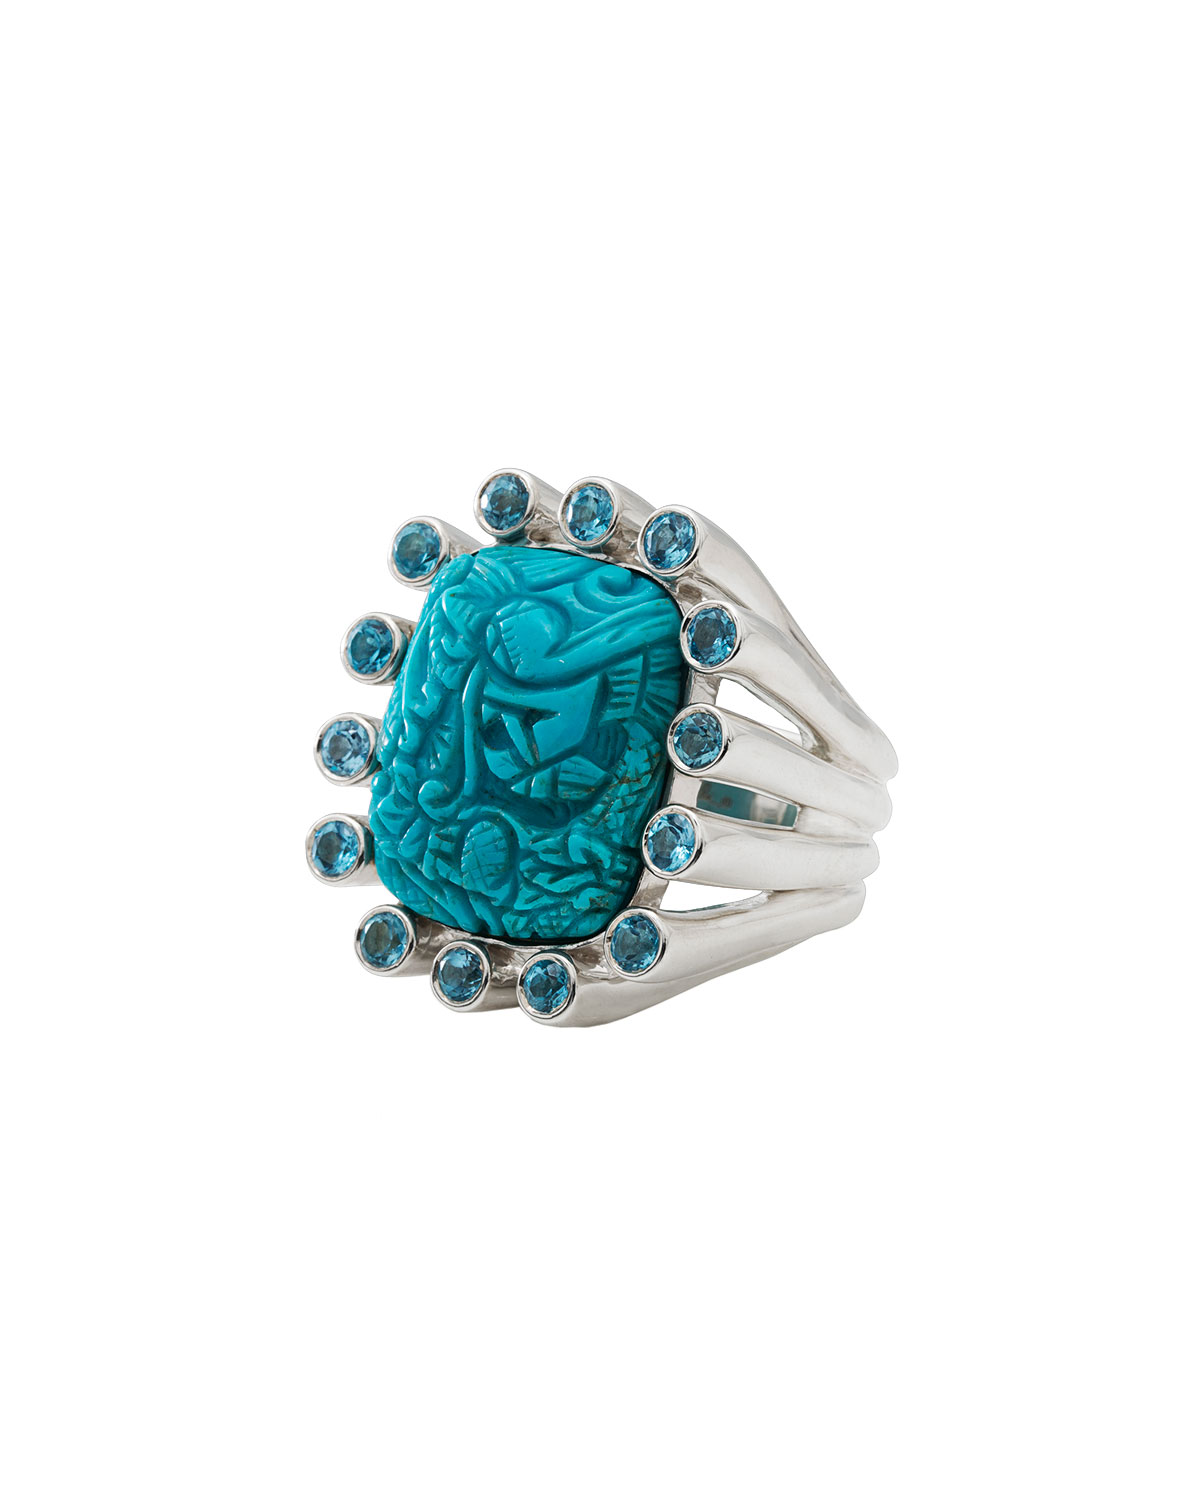 CARVED TURQUOISE & BLUE TOPAZ RING